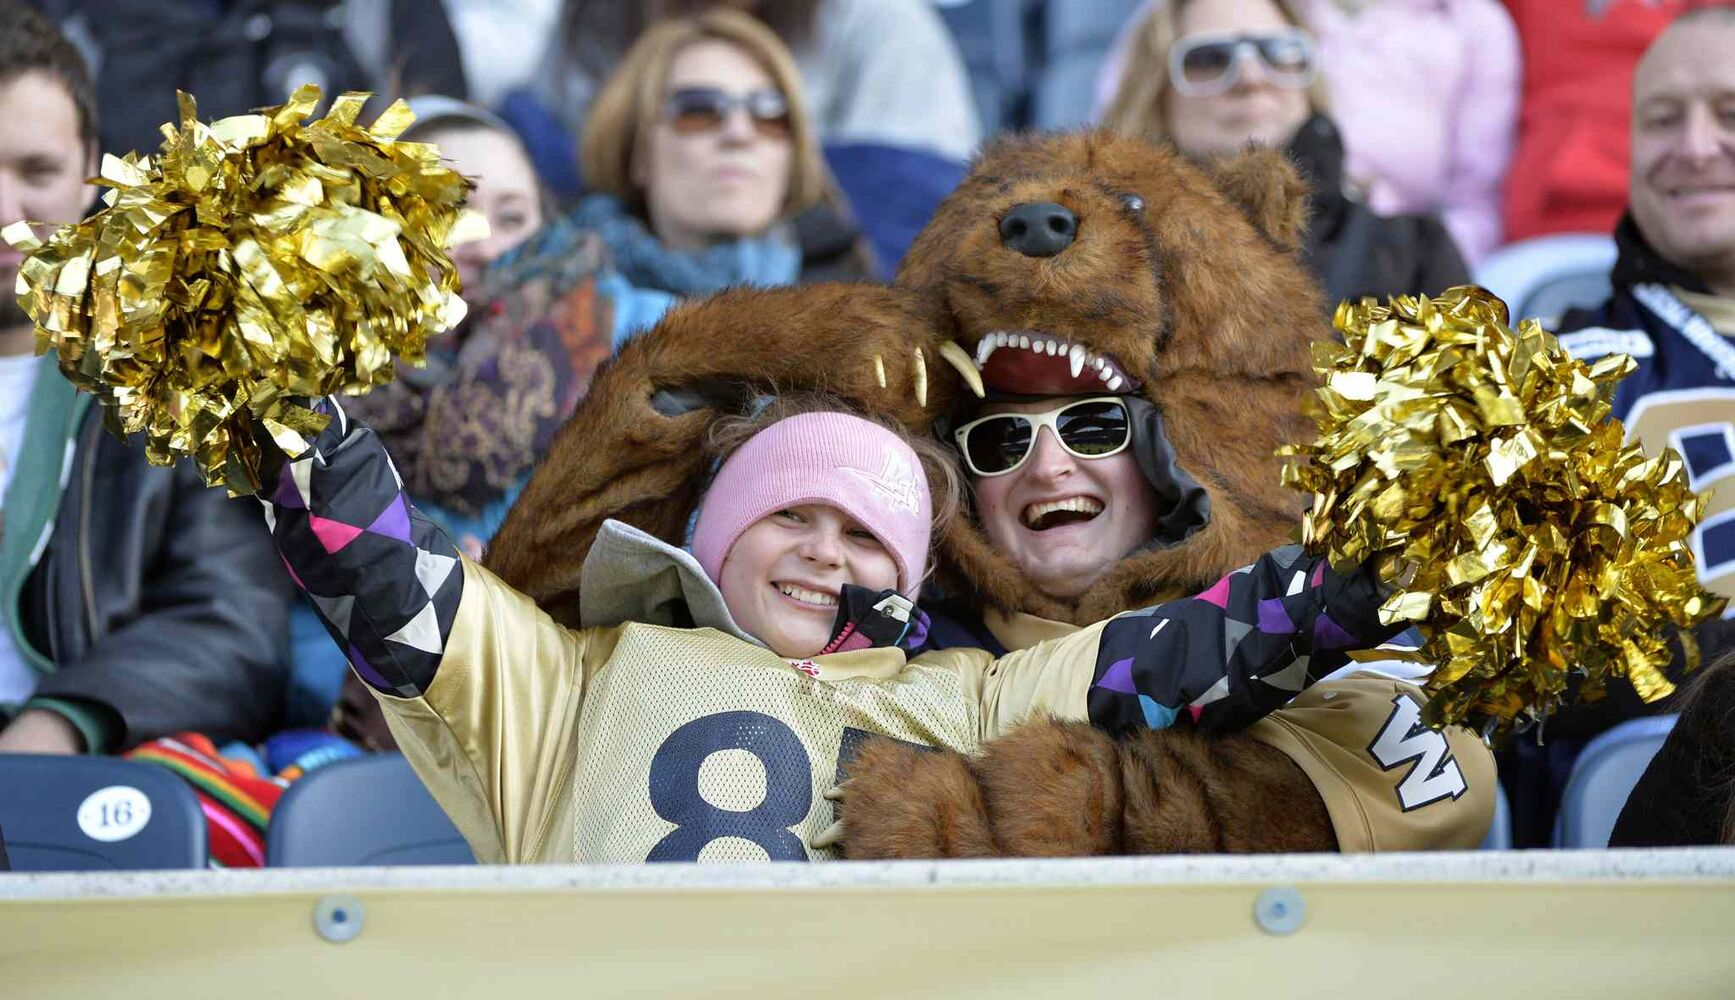 Winnipeg football fans watch the game between the Winnipeg Blue Bombers and Hamilton Tiger-Cats during the second half of CFL action in Winnipeg Saturday, November 2, 2013. THE CANADIAN PRESS/Fred Greenslade (CP)